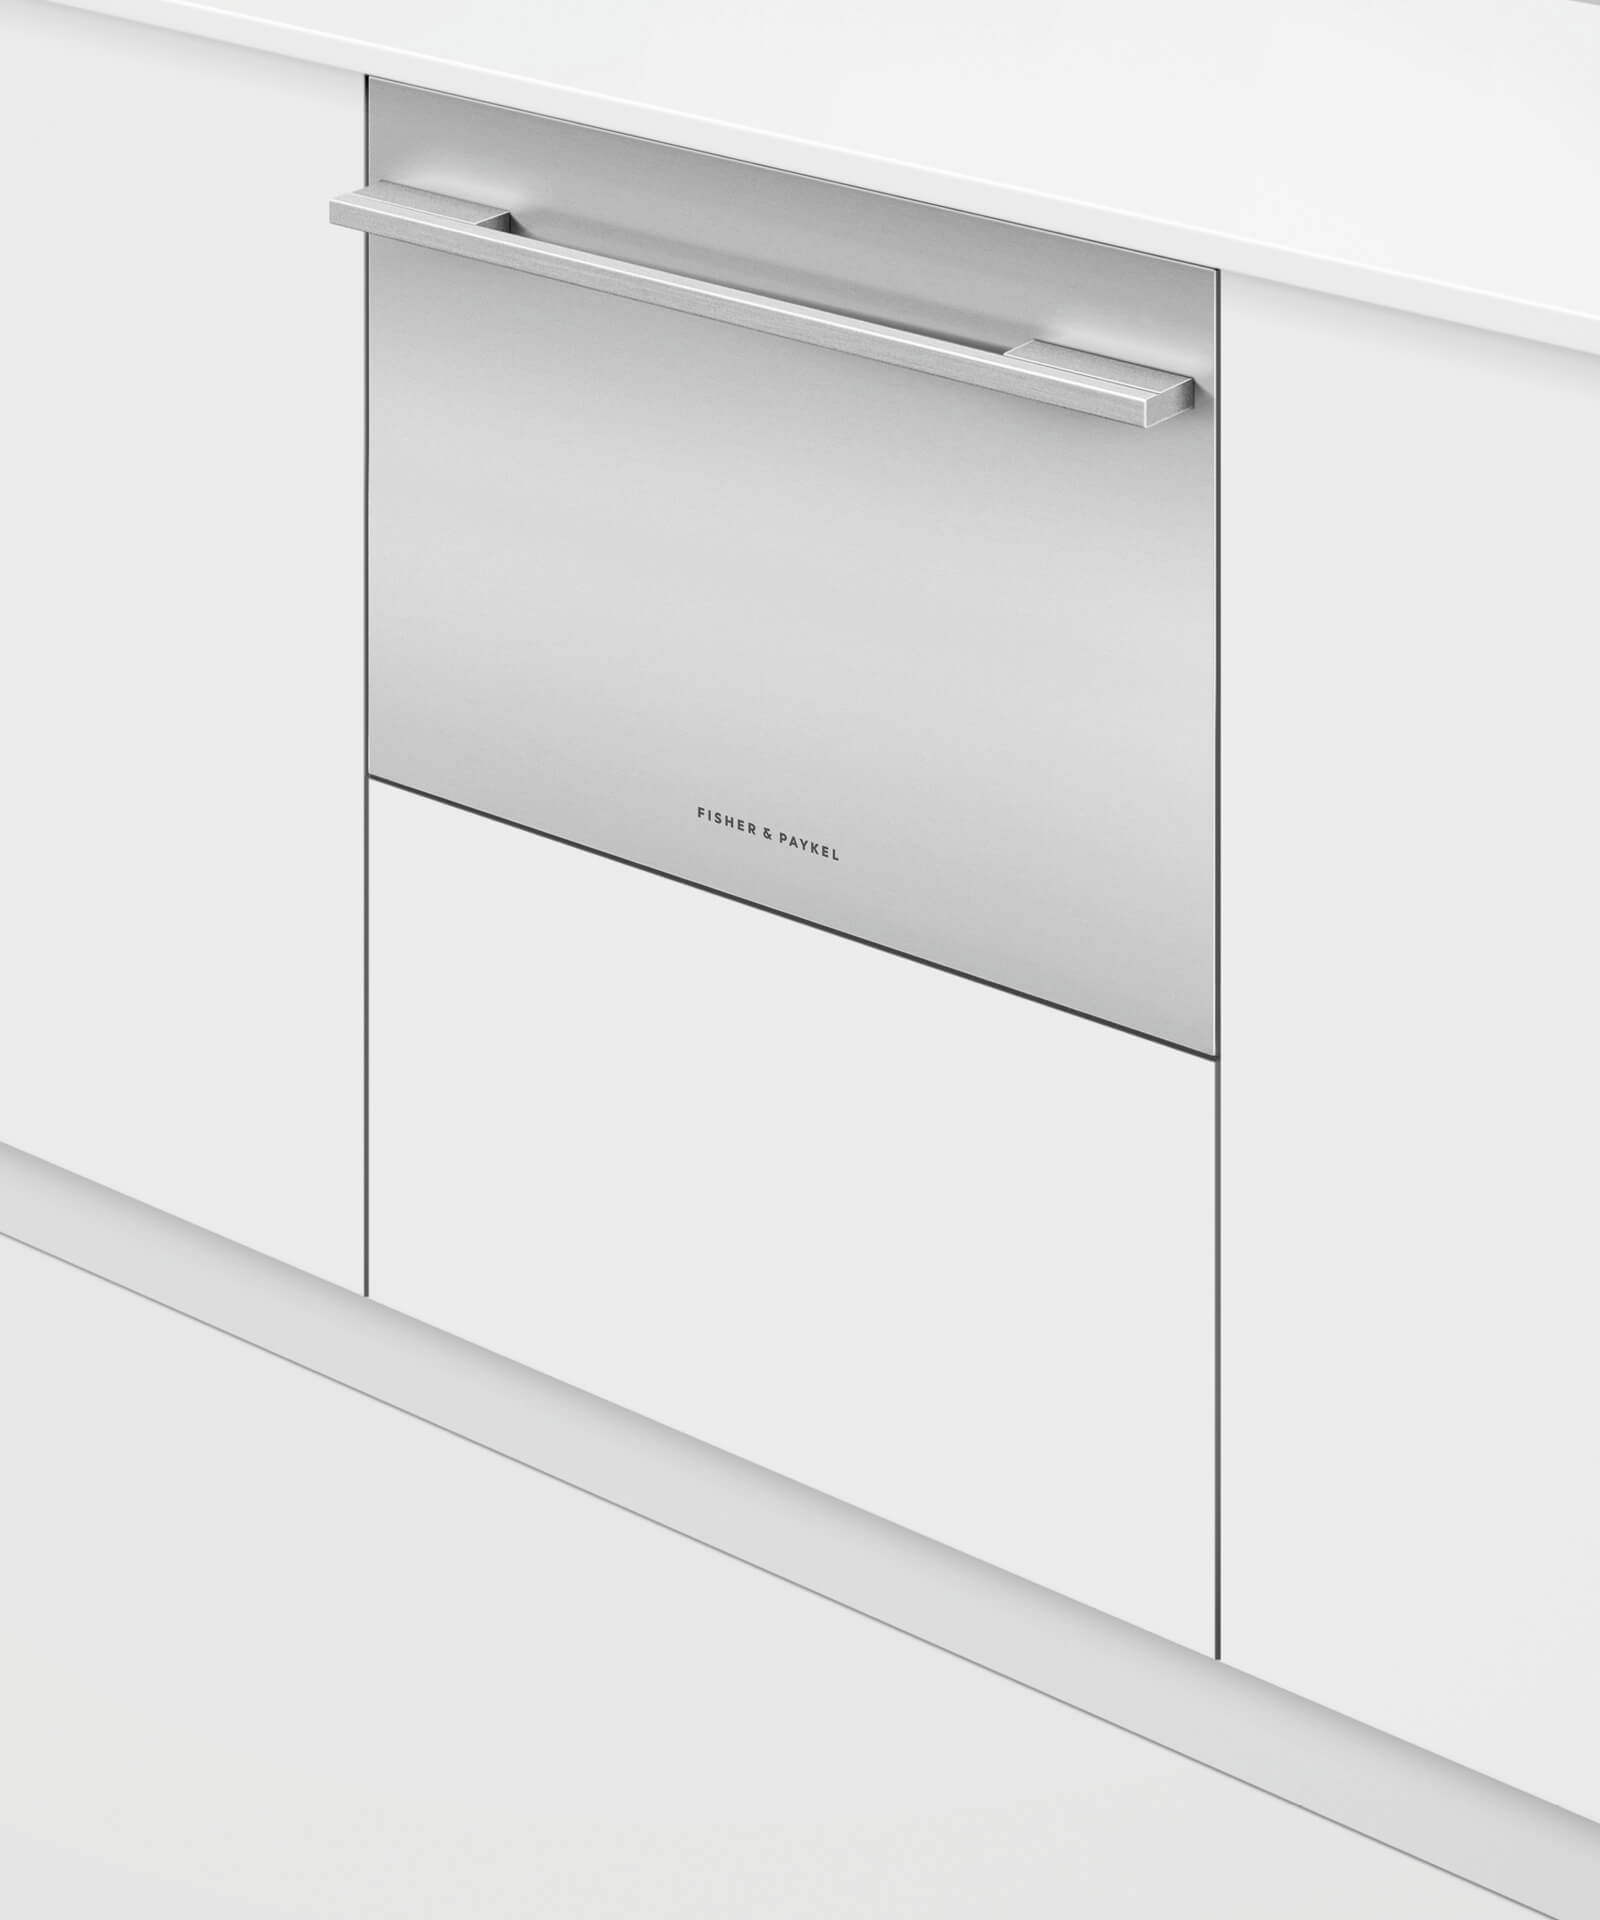 dishwasher energy amazon style stainless paykel star drawer steel fisher semi integrated appliances com dp dishdrawer